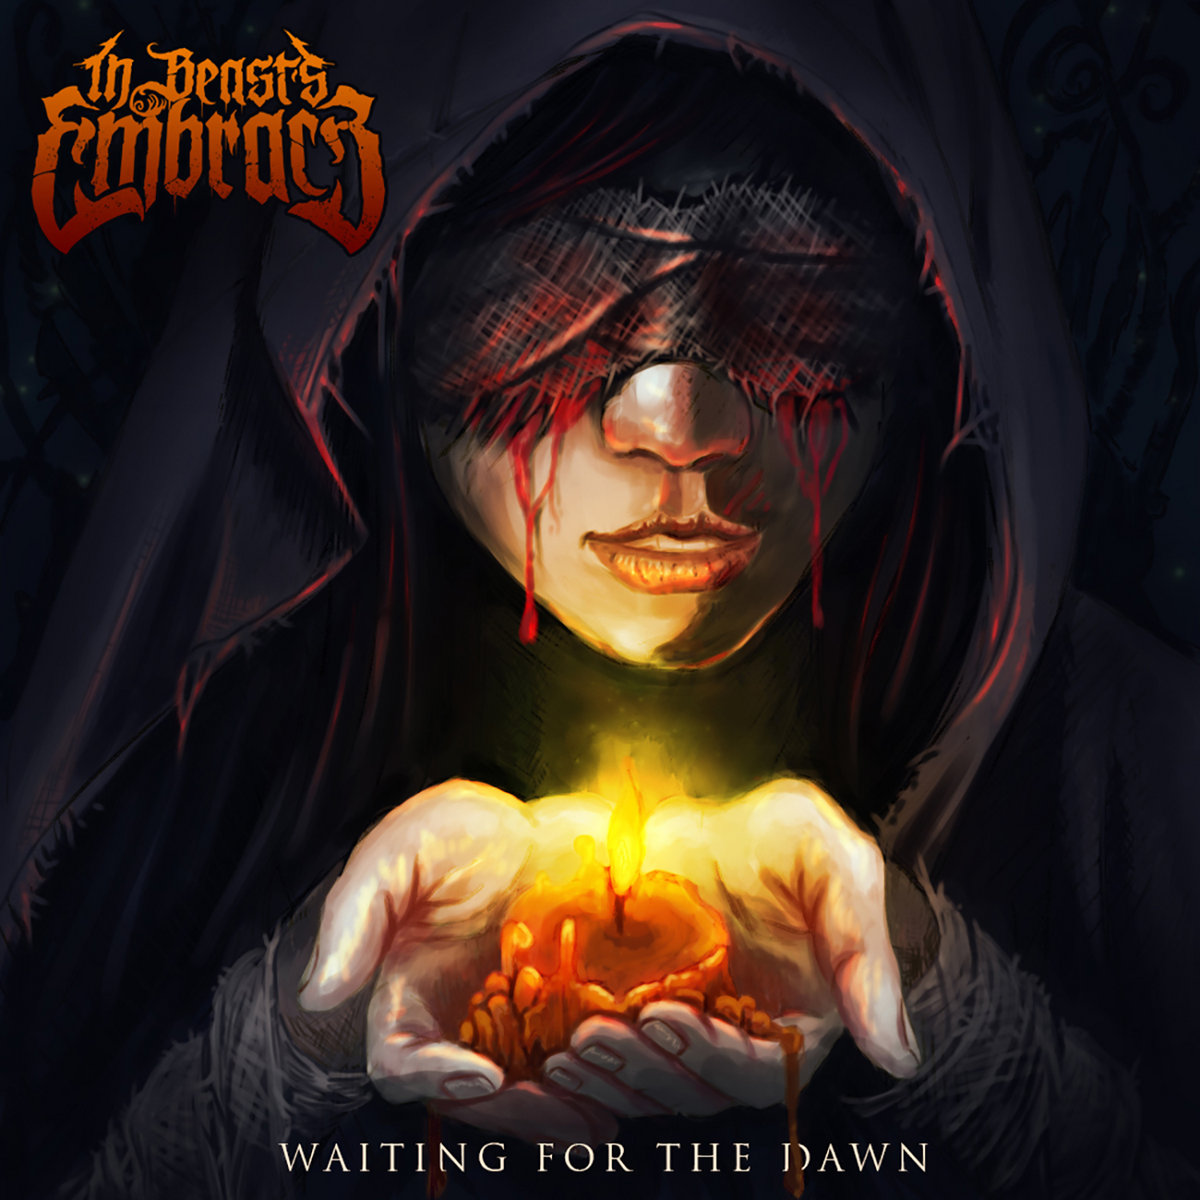 Waiting for the Dawn. by In Beast's Embrace